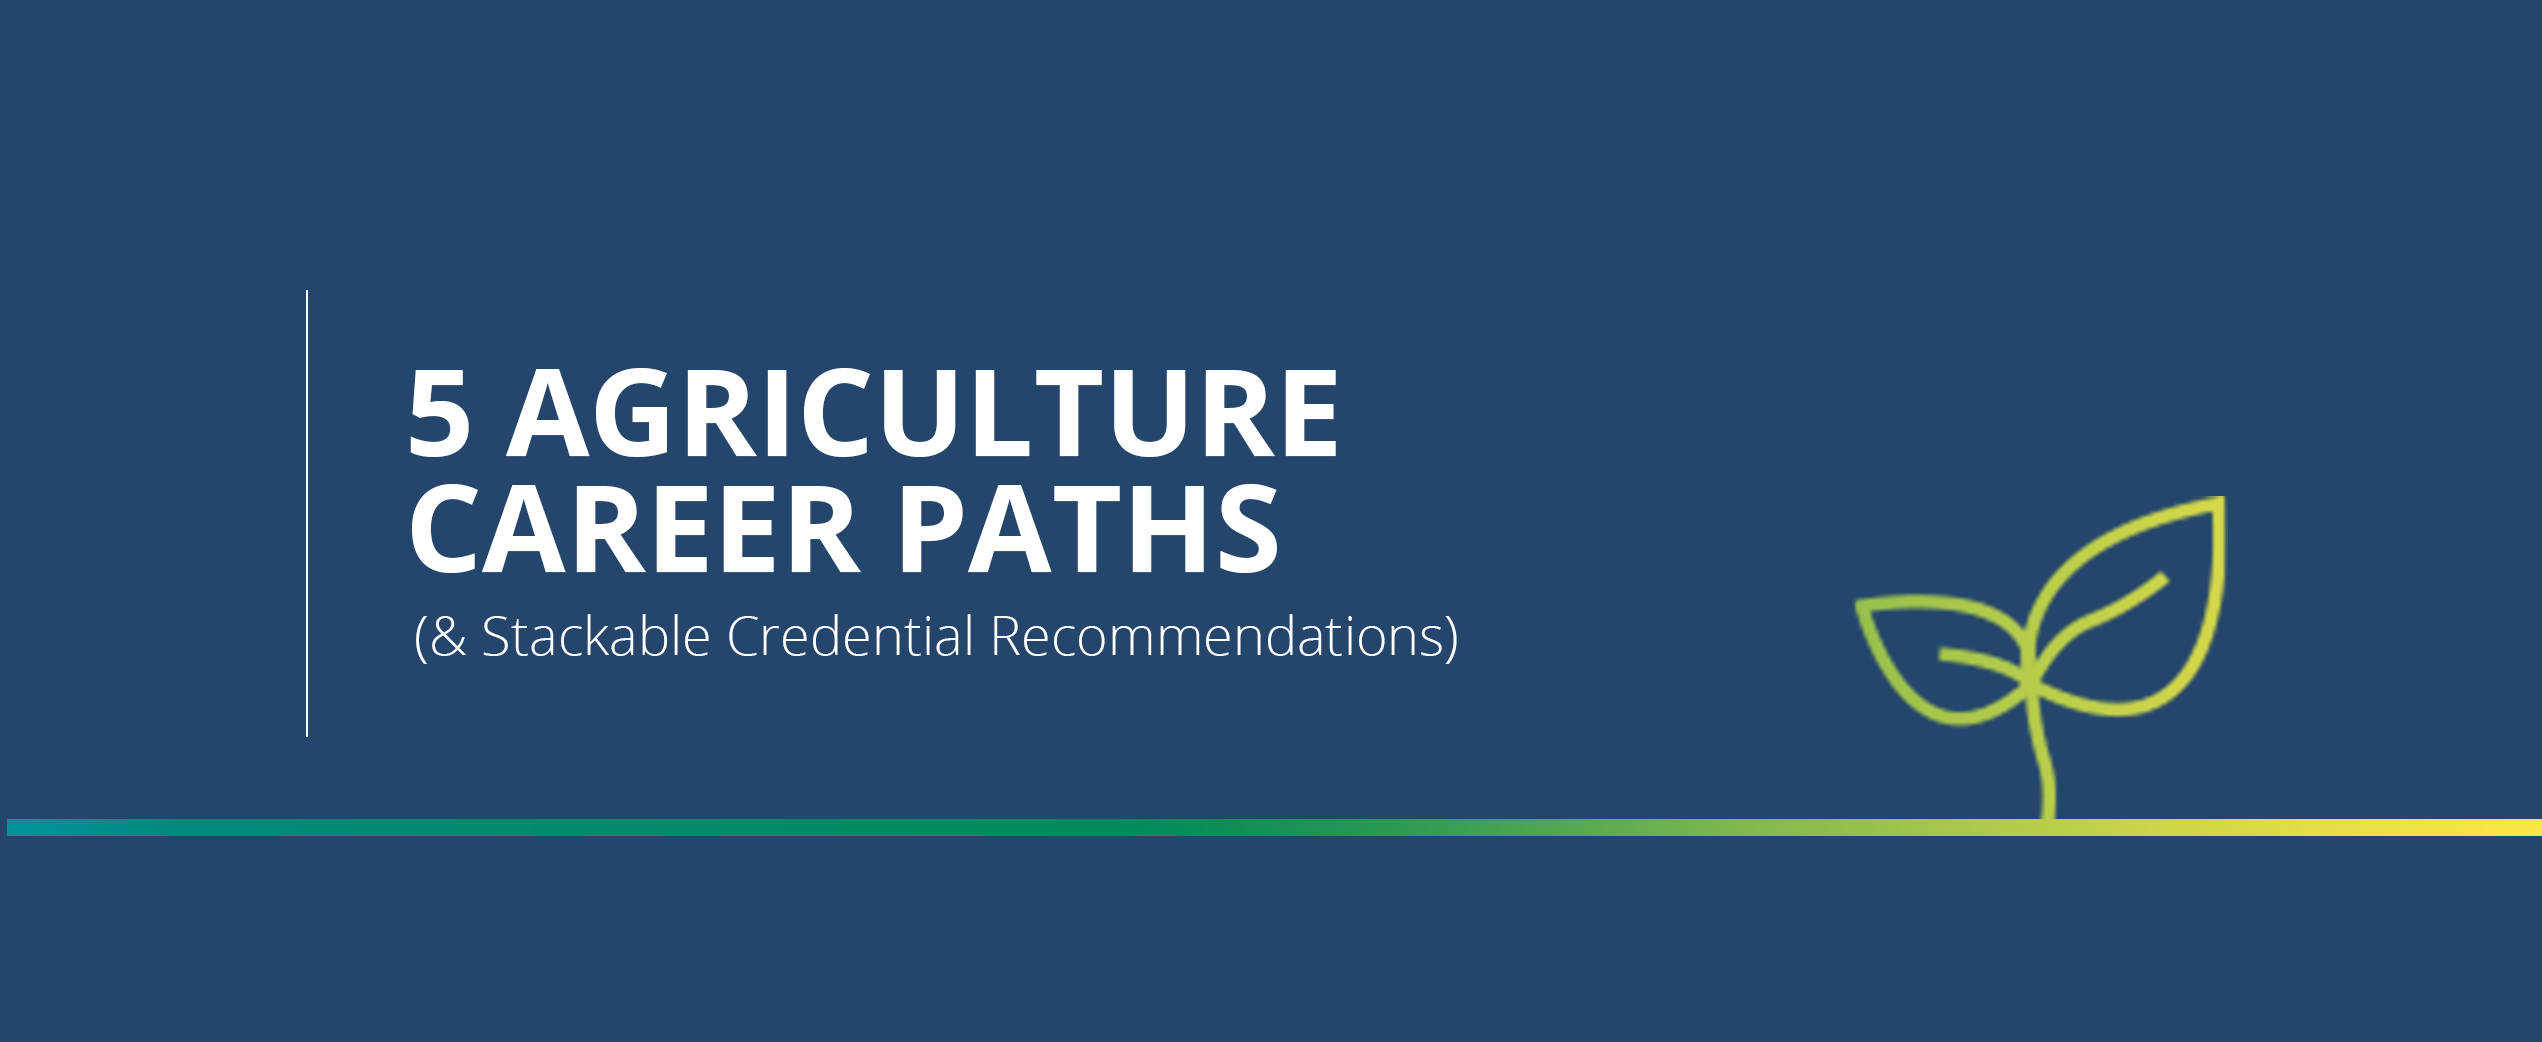 5 Agriculture Career Paths (& Stackable Credential Recommendations)